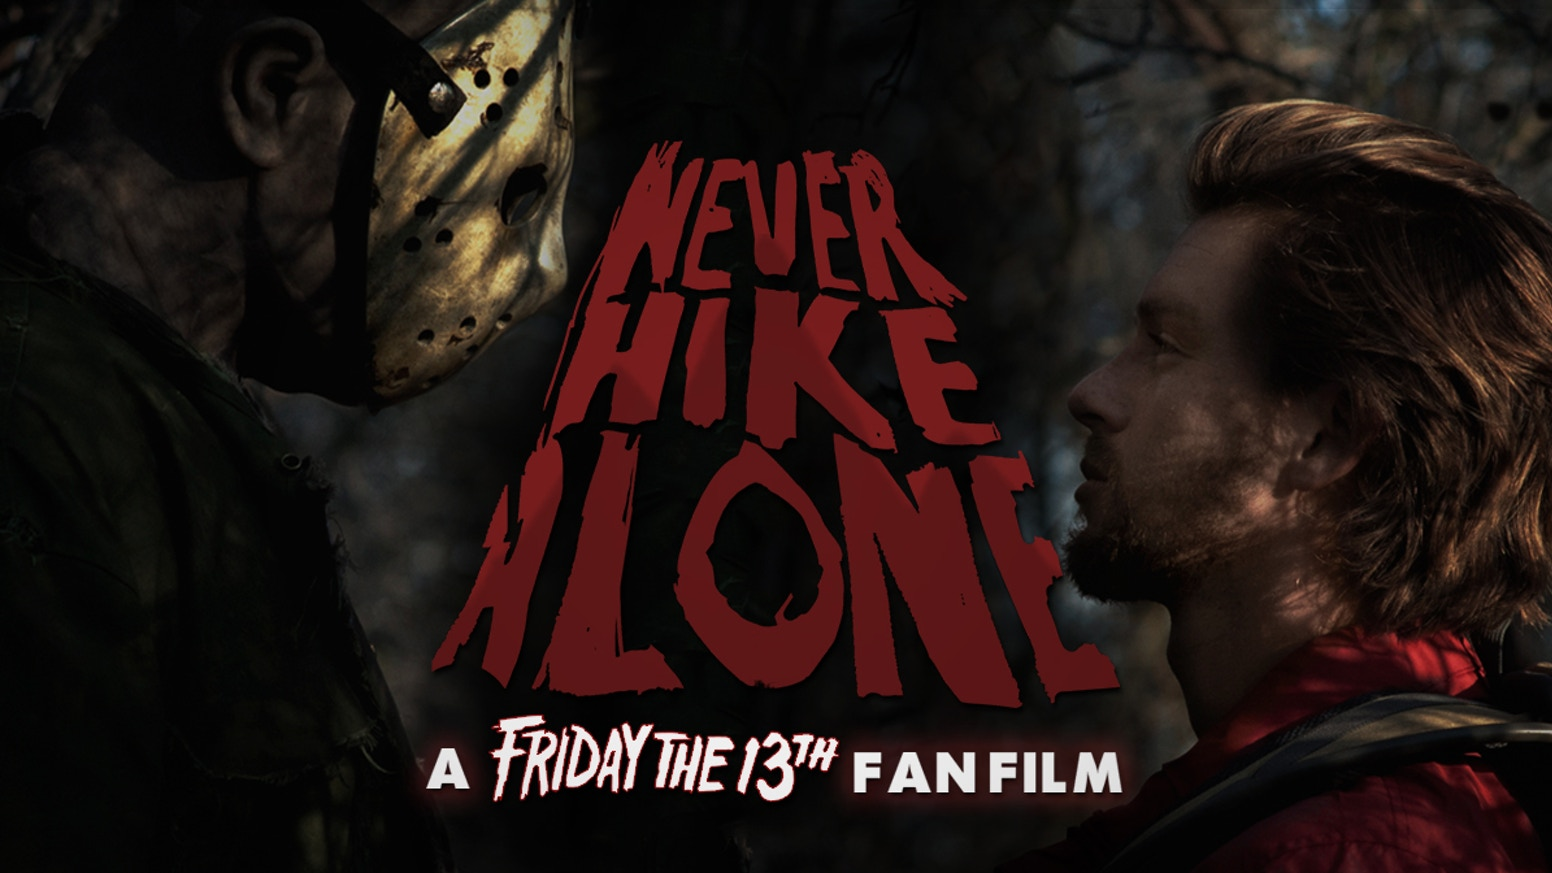 Never Hike Alone A Friday The 13th Fan Film Finishing Fund By Womp